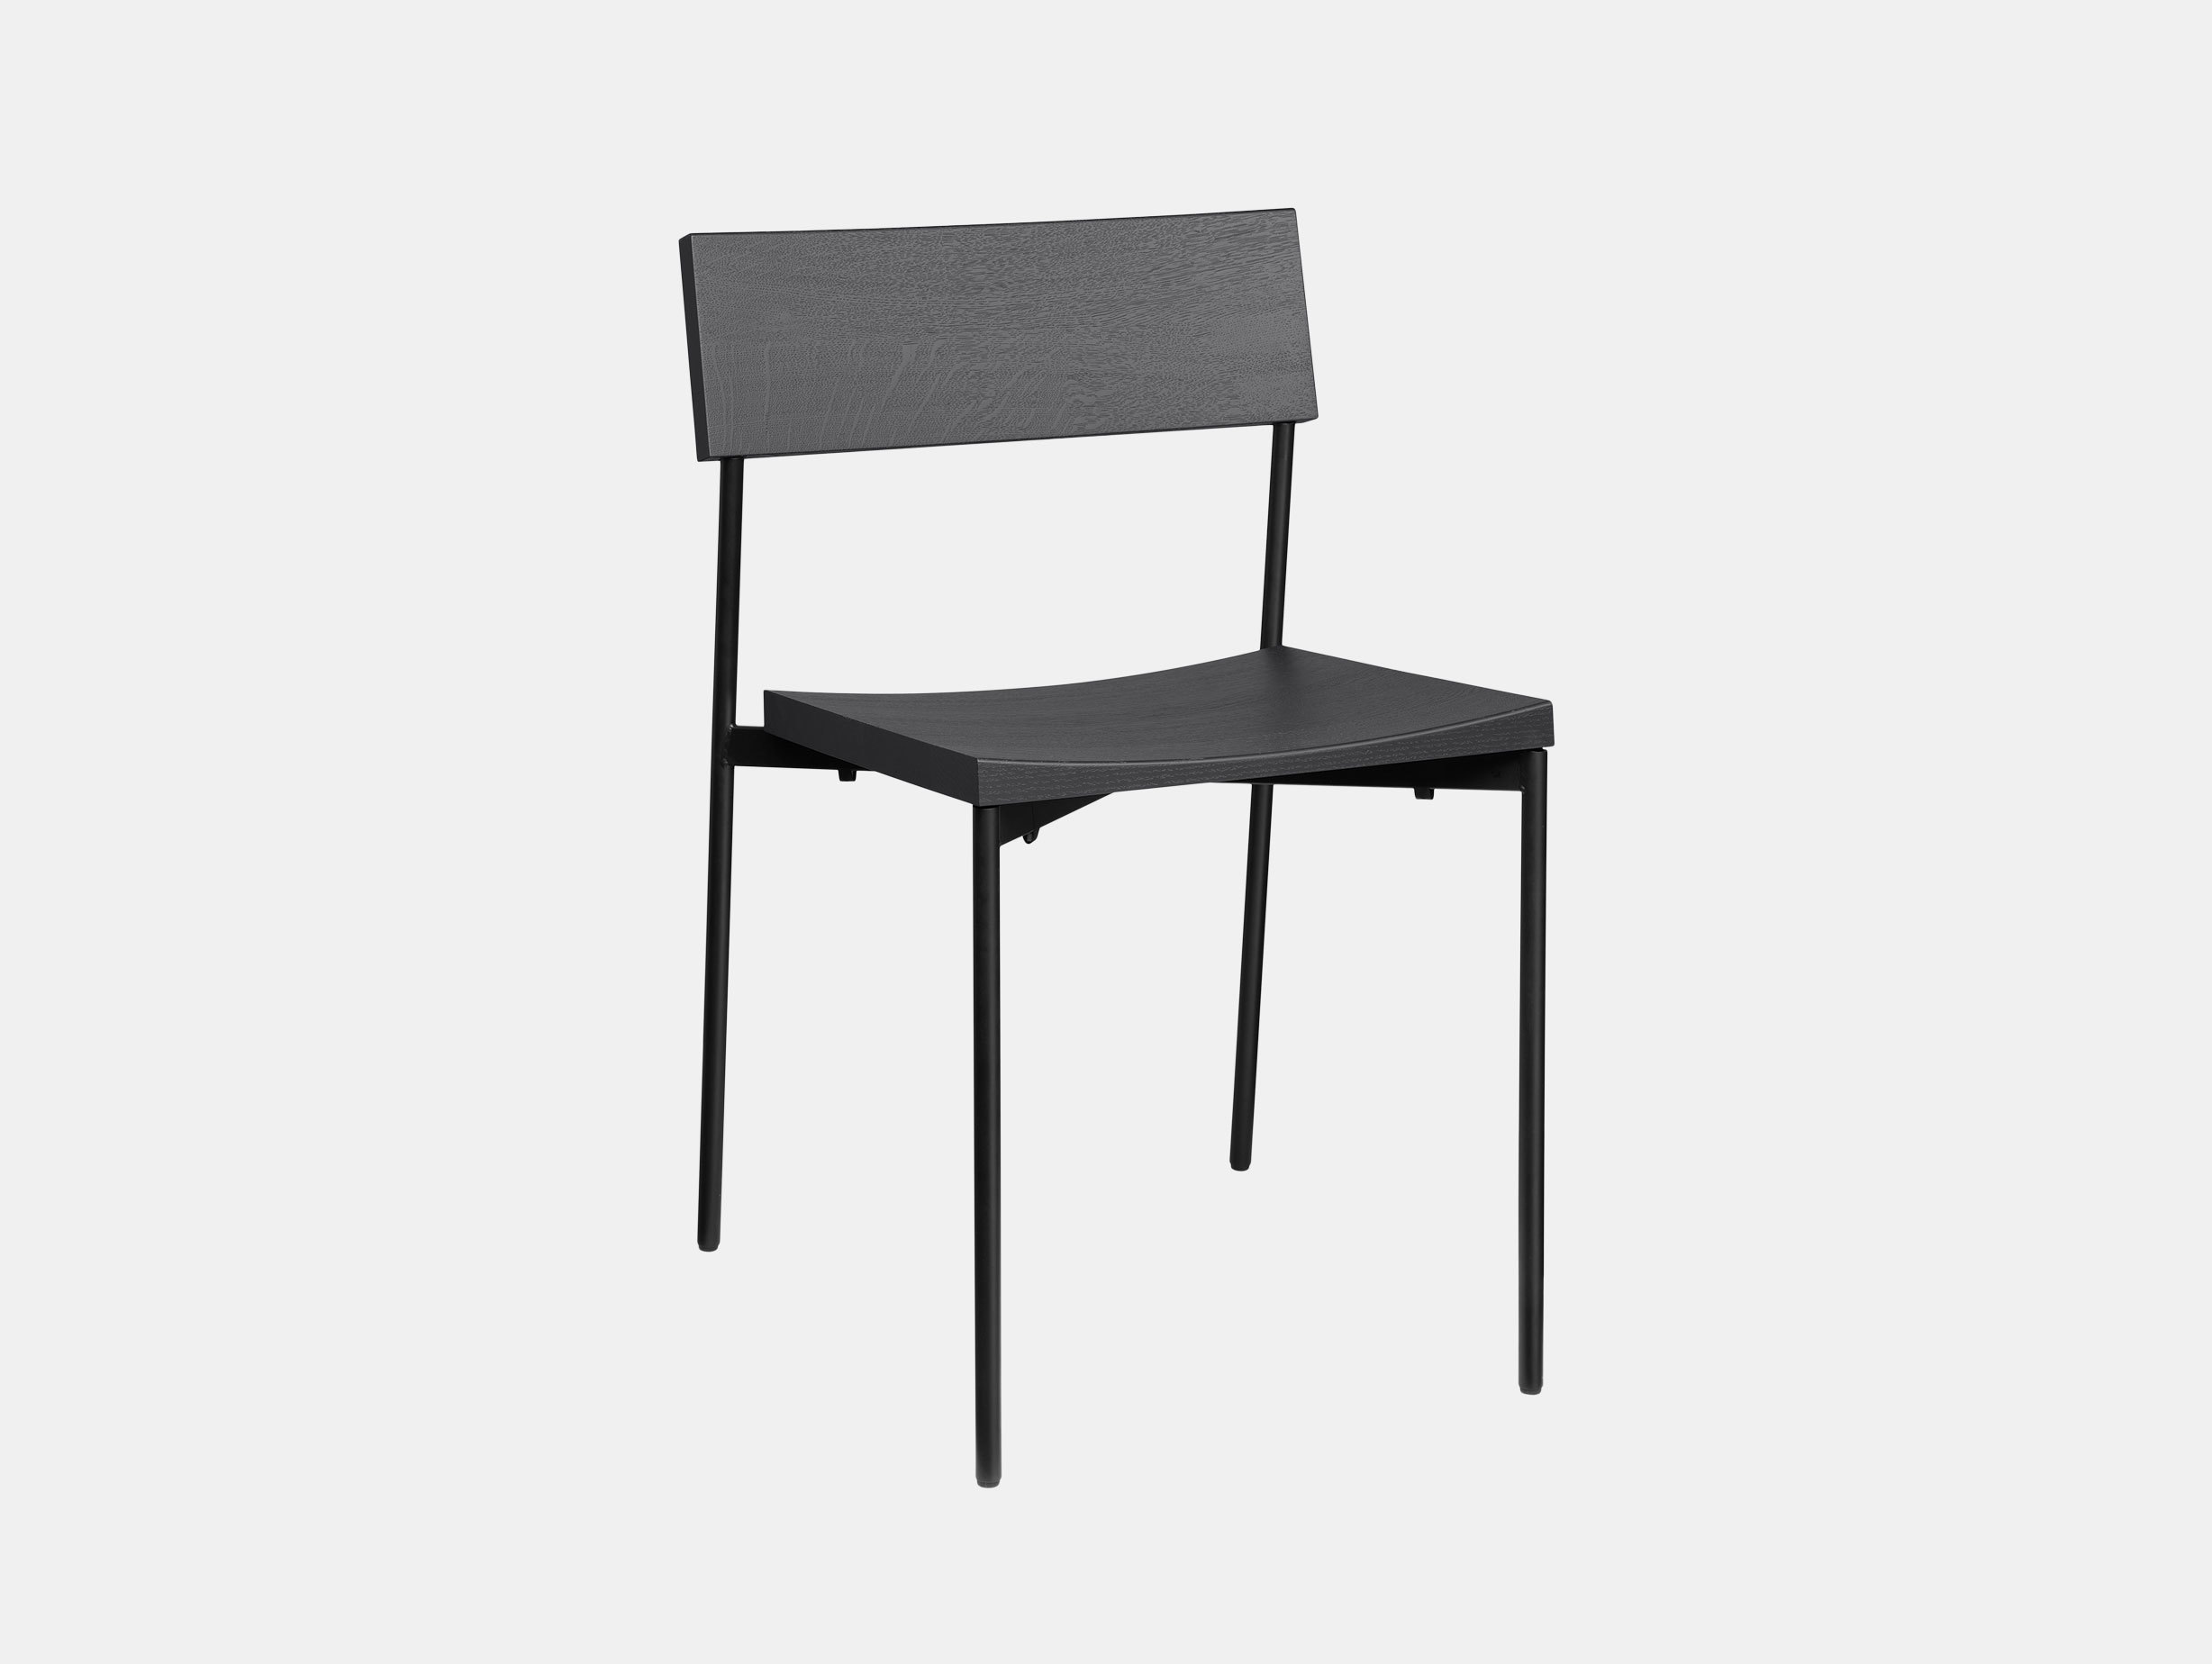 Henning Chair image 1